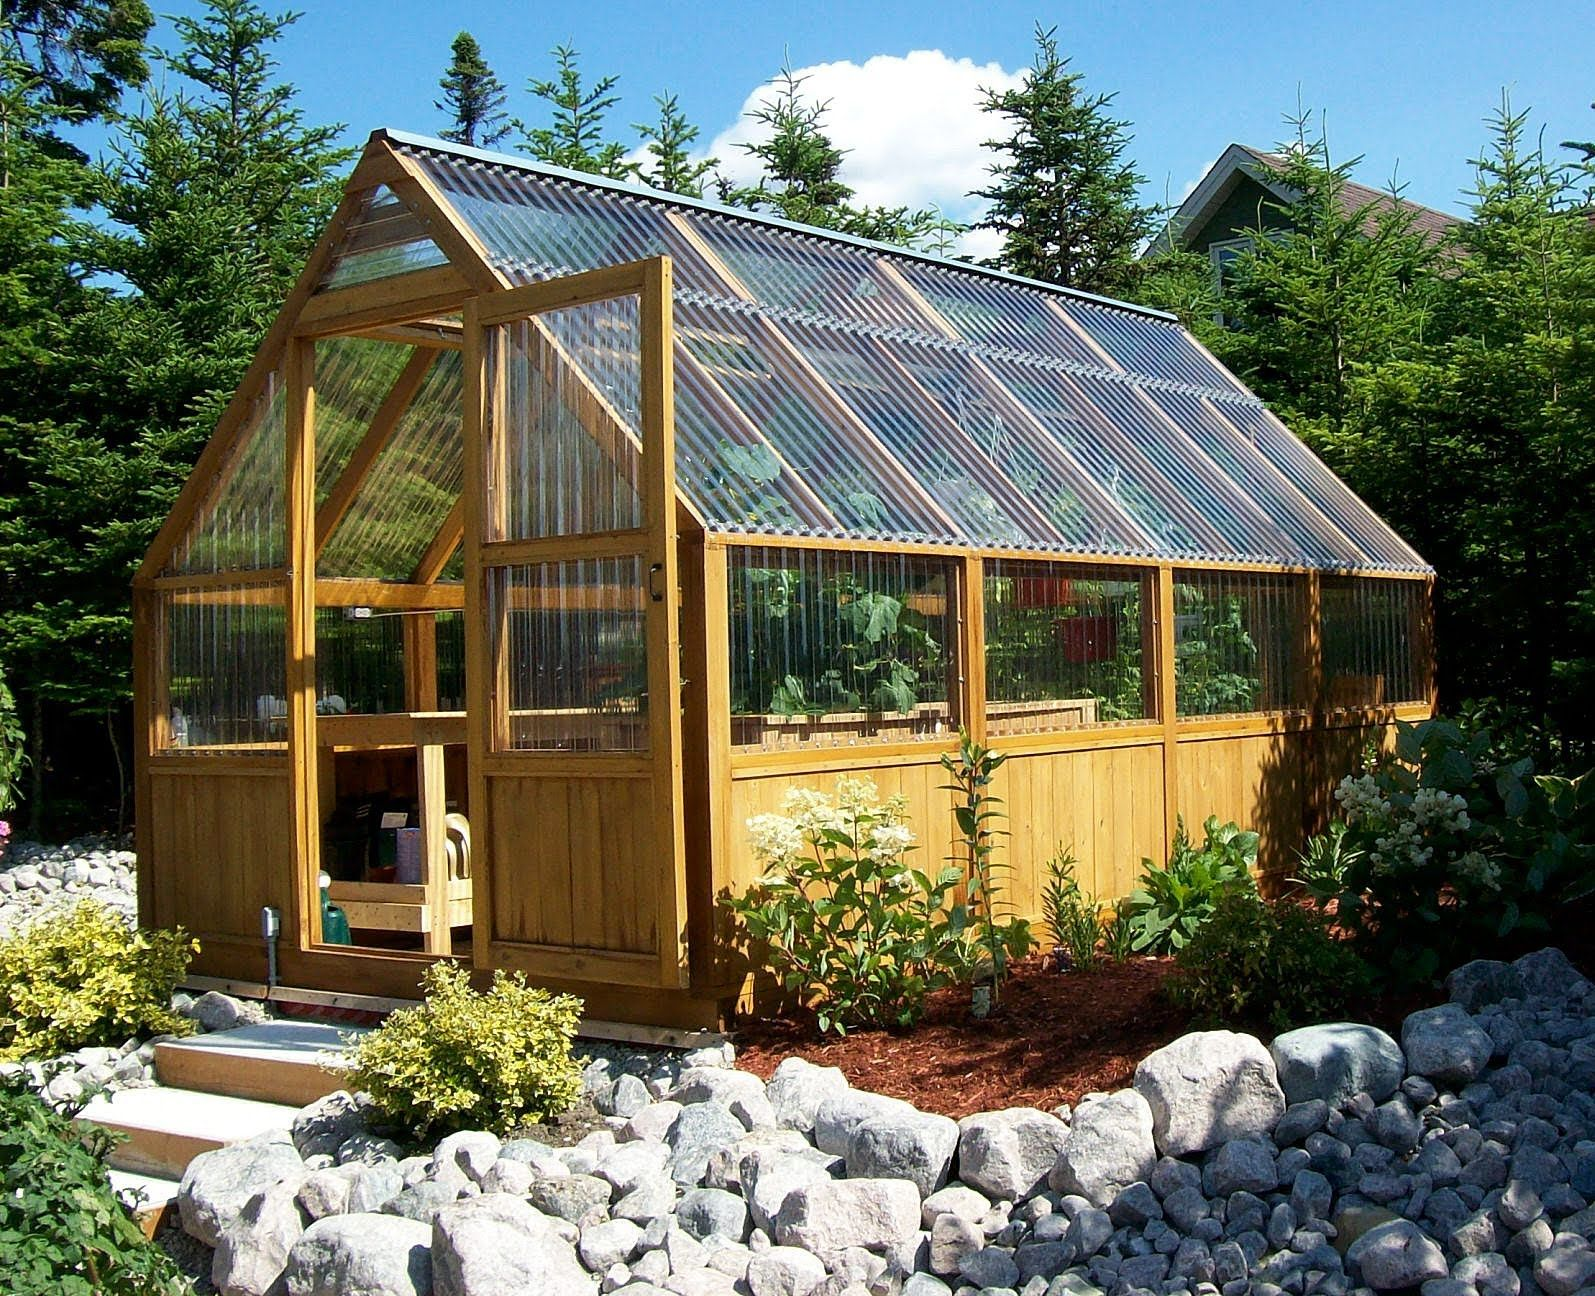 Greenhouse Plans: How to Build a DIY Hobby Greenhouse - Detailed ...